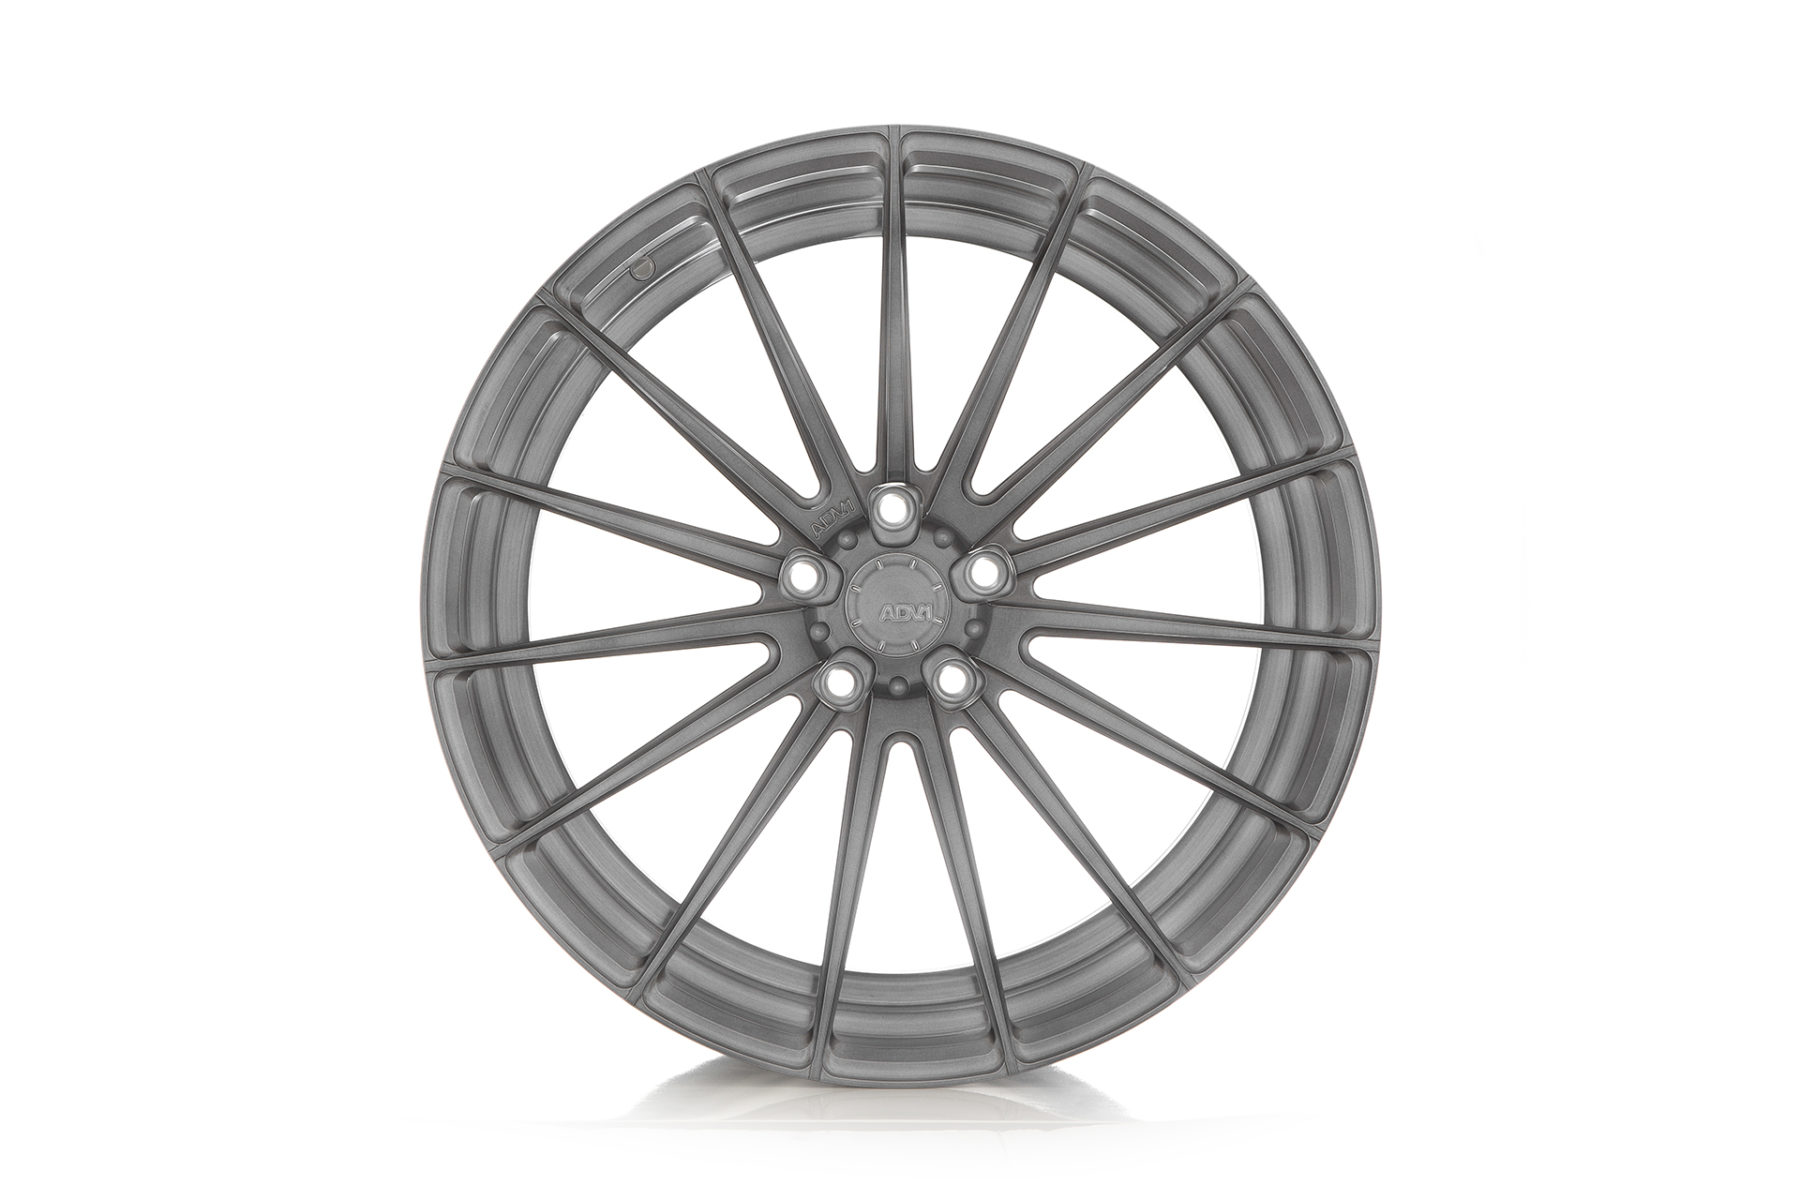 Adv15 M V2 Sl Series Wheels